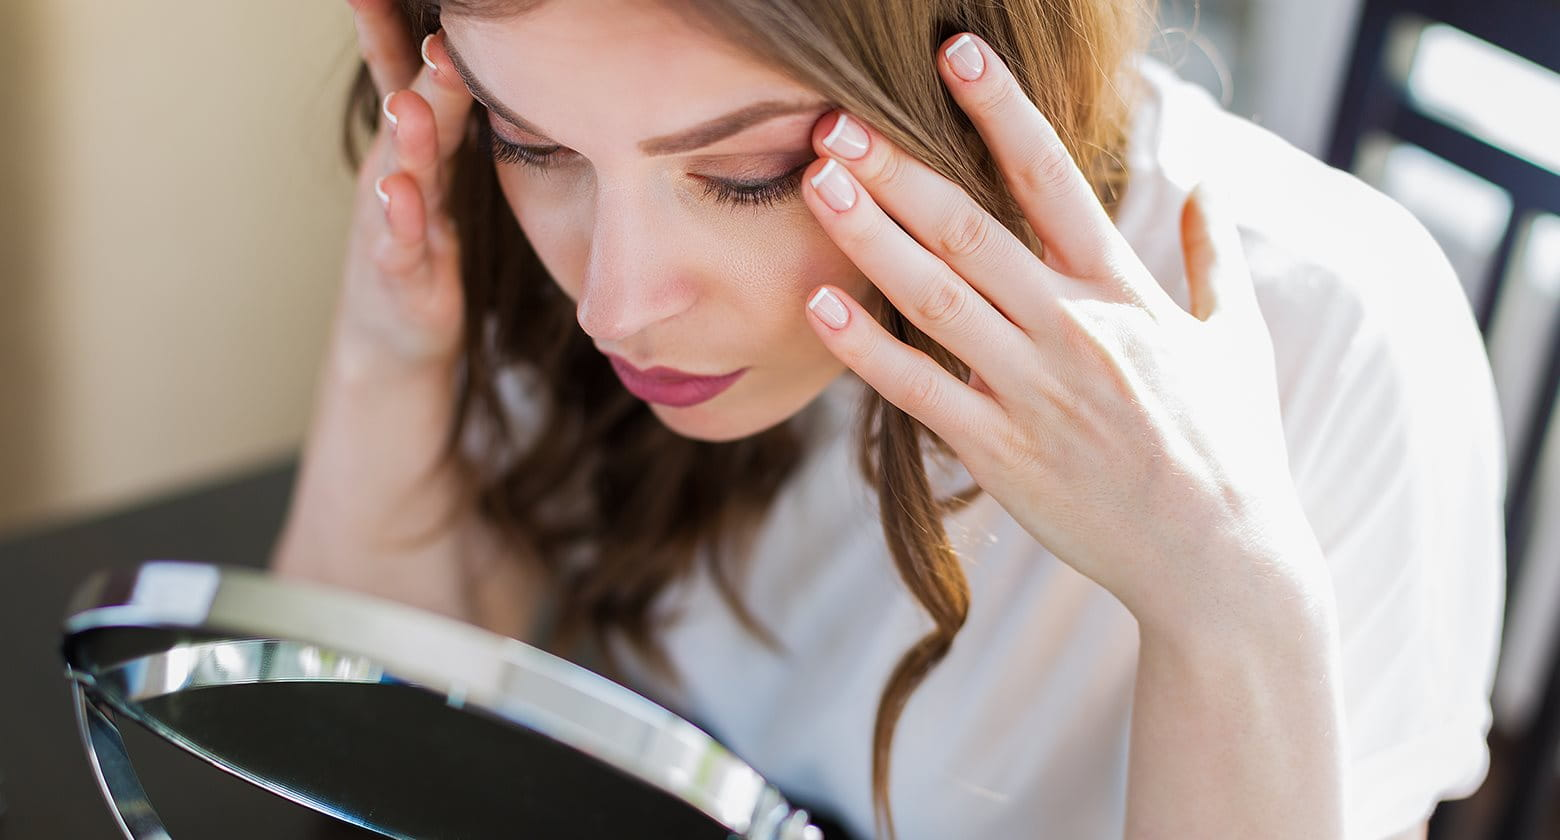 What to do about acne and wrinkles?